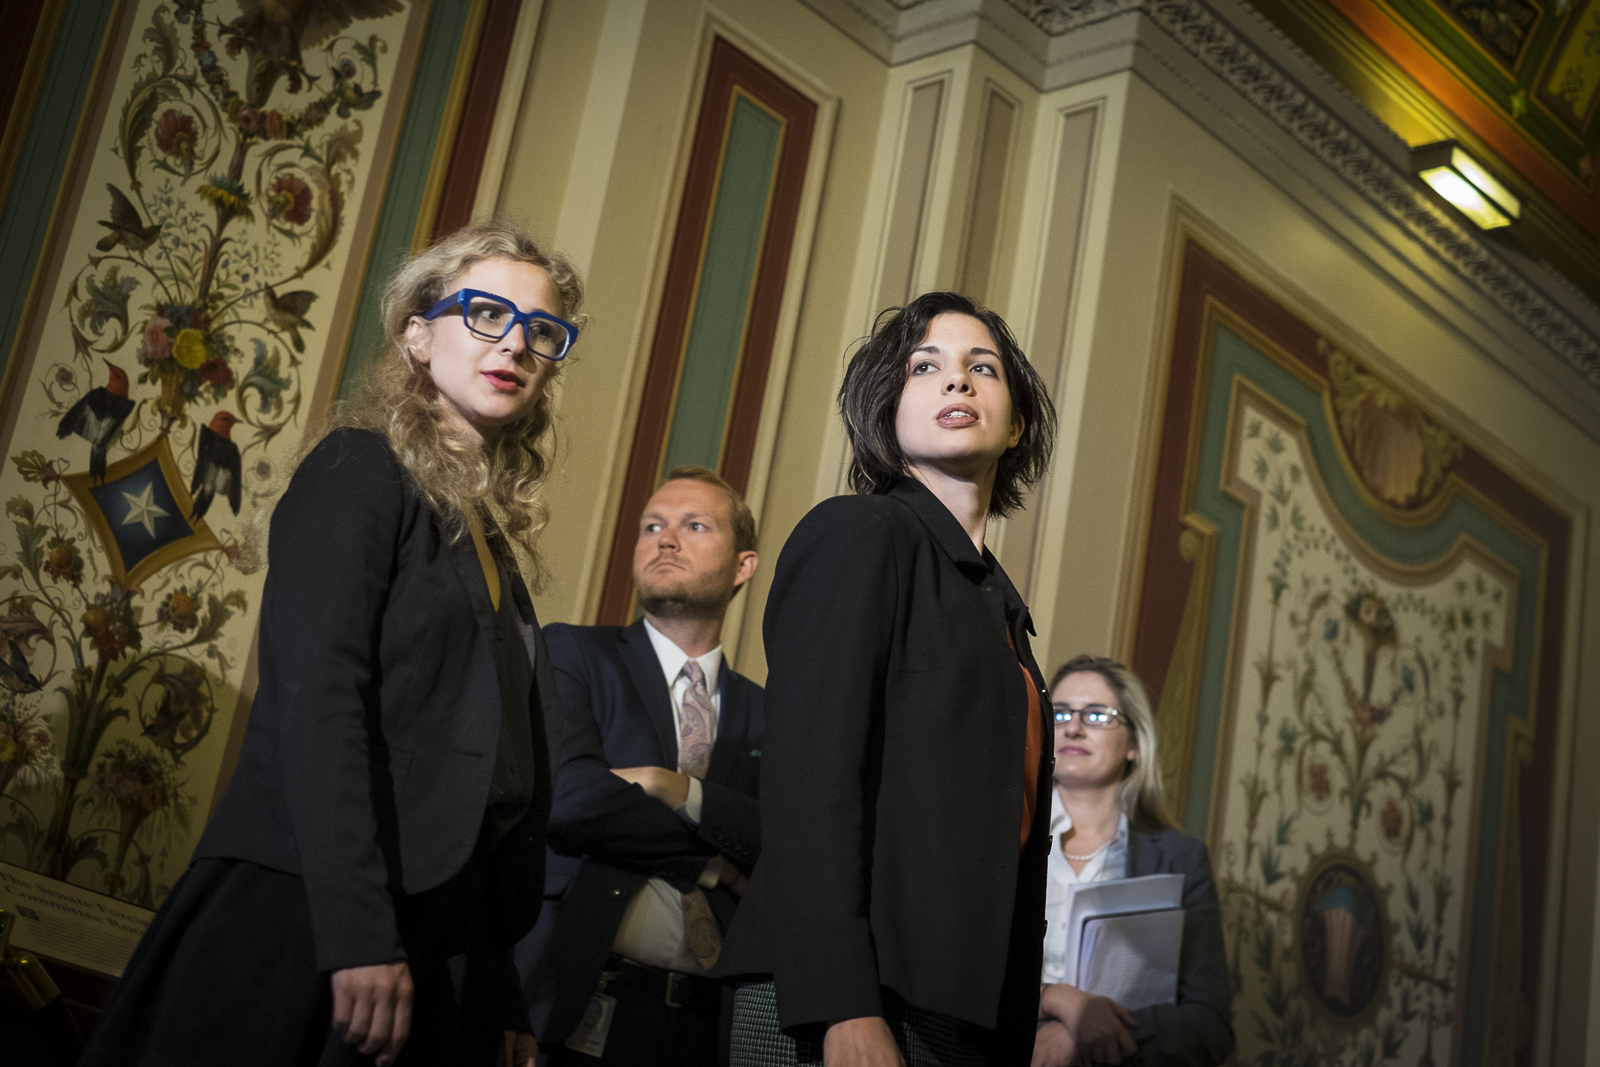 Maria Alyokhina (L) and Nadya Tolokonnikova, members of the Russian feminist punk rock protest group, Pussy Riot, arrive for a press conference with the Senator Foreign Relations Committee on Capitol Hill in Washington, D.C., to discuss the state of human rights in Russia.